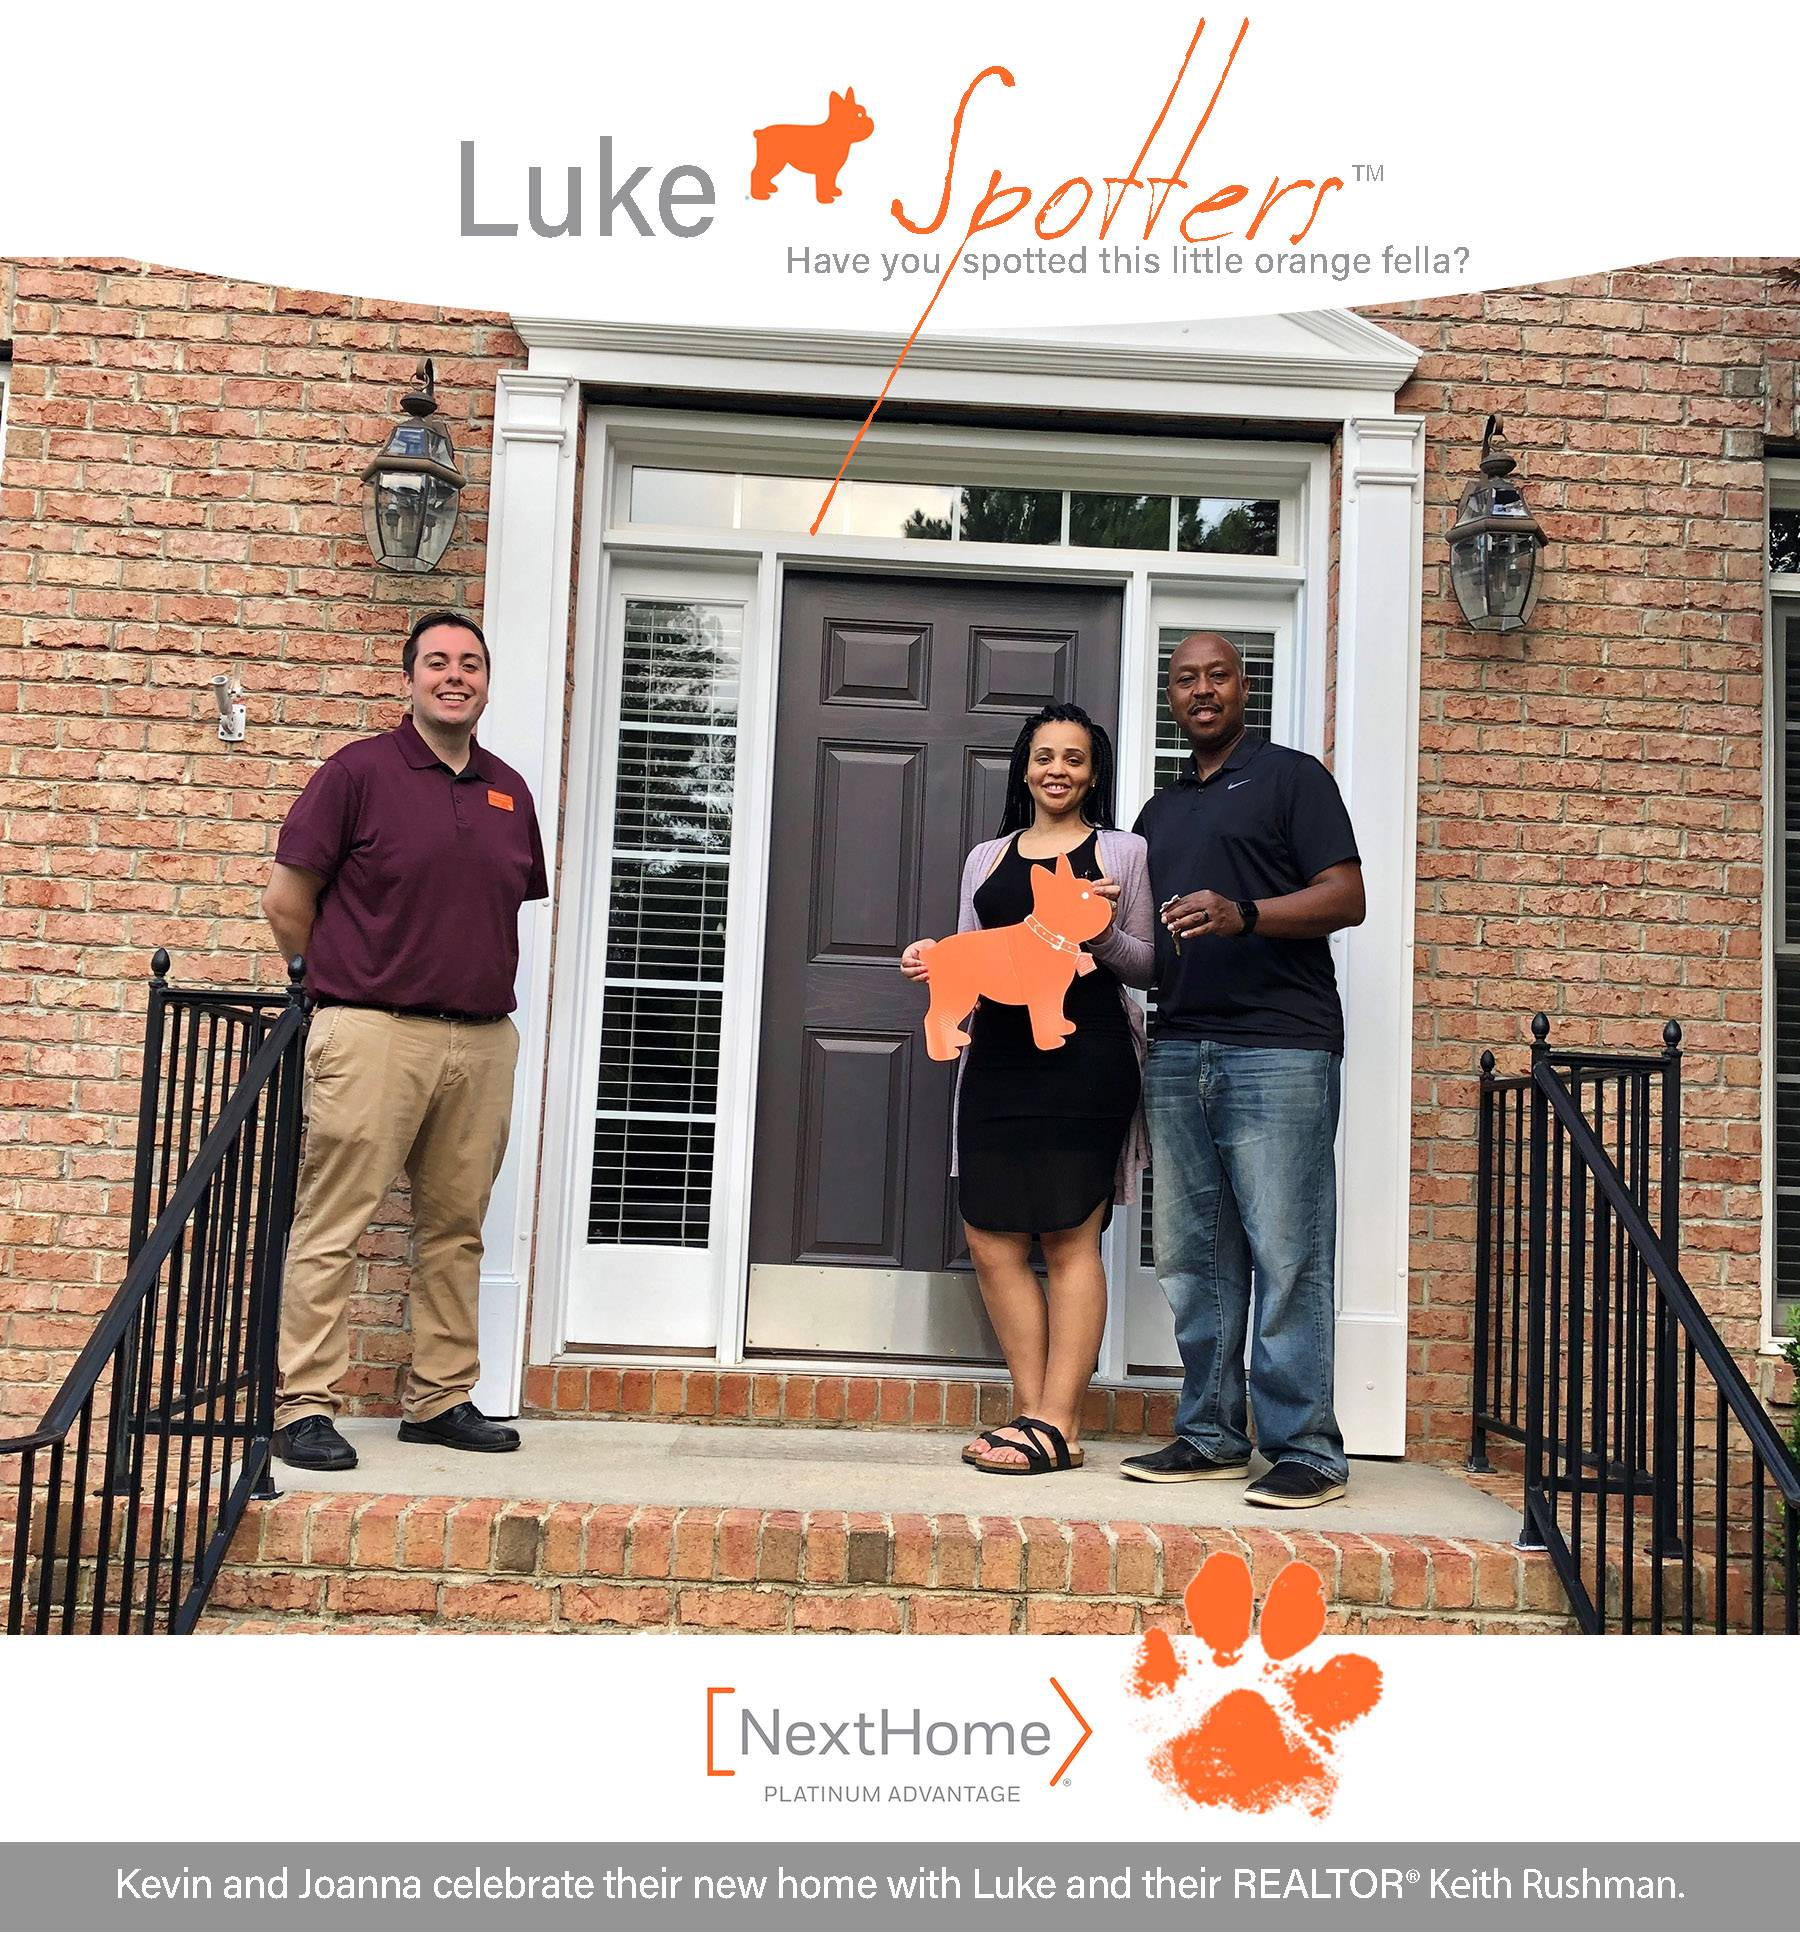 Kevin and Joanna celebrate their new home with Luke and their REALTOR® Keith Rushman.